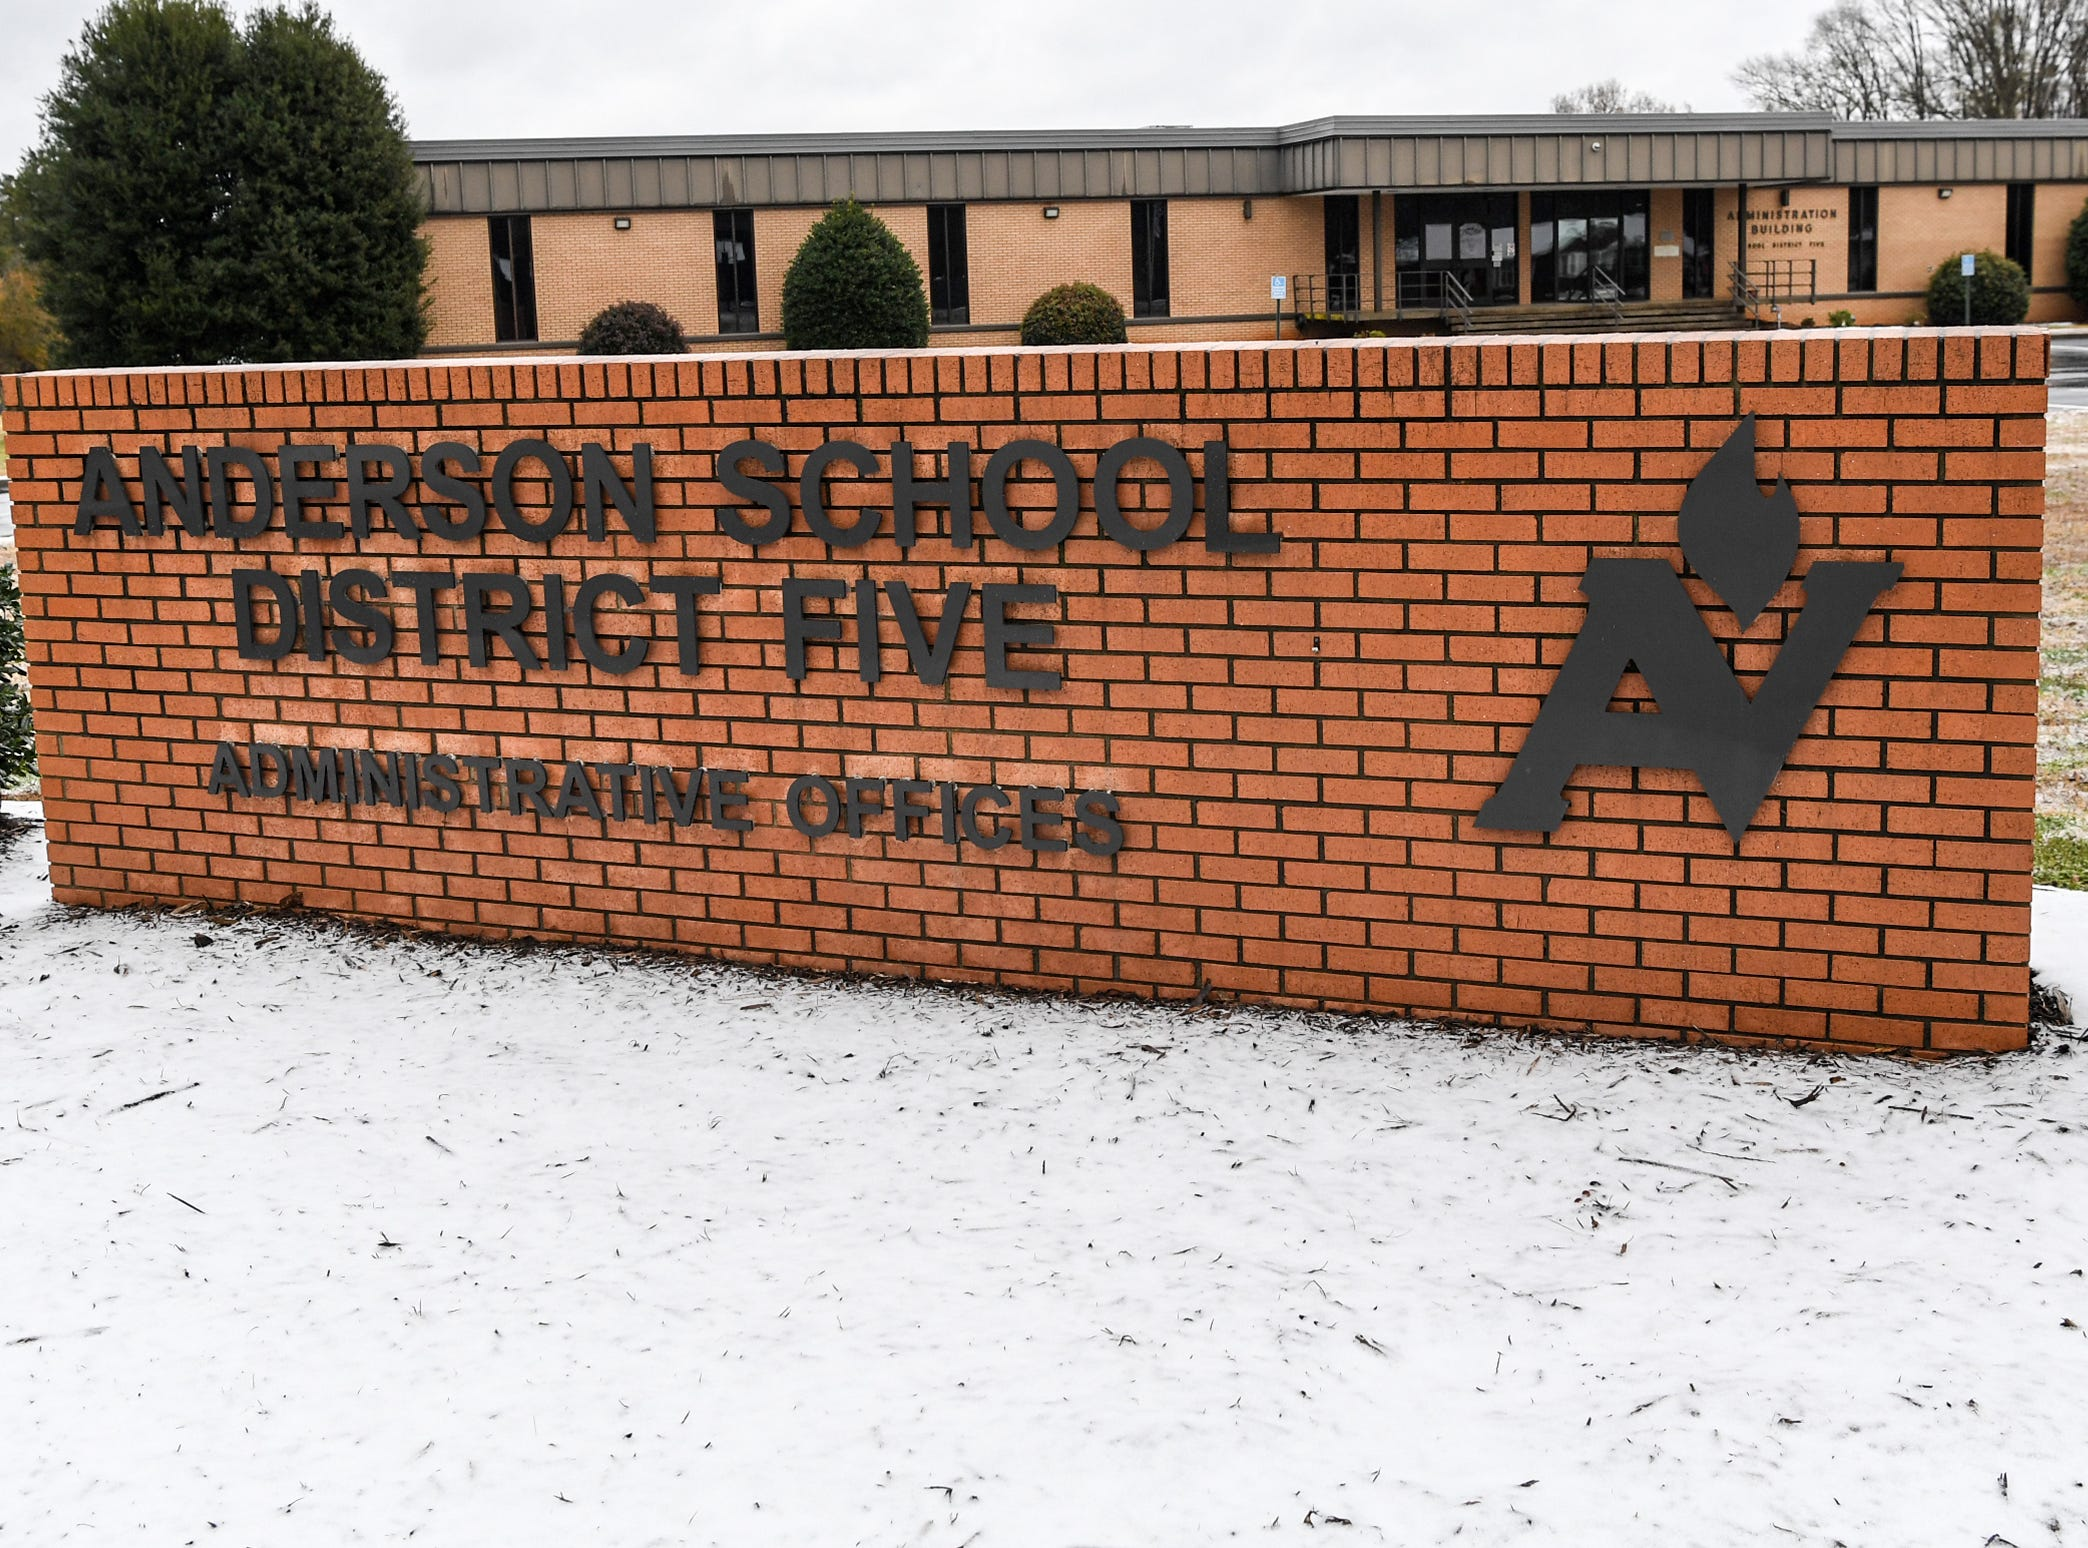 Snow and sleet fell around the sign for Anderson School District Five Administrative Offices along Highway 28 bypass in Anderson Sunday, December 9, 2018.